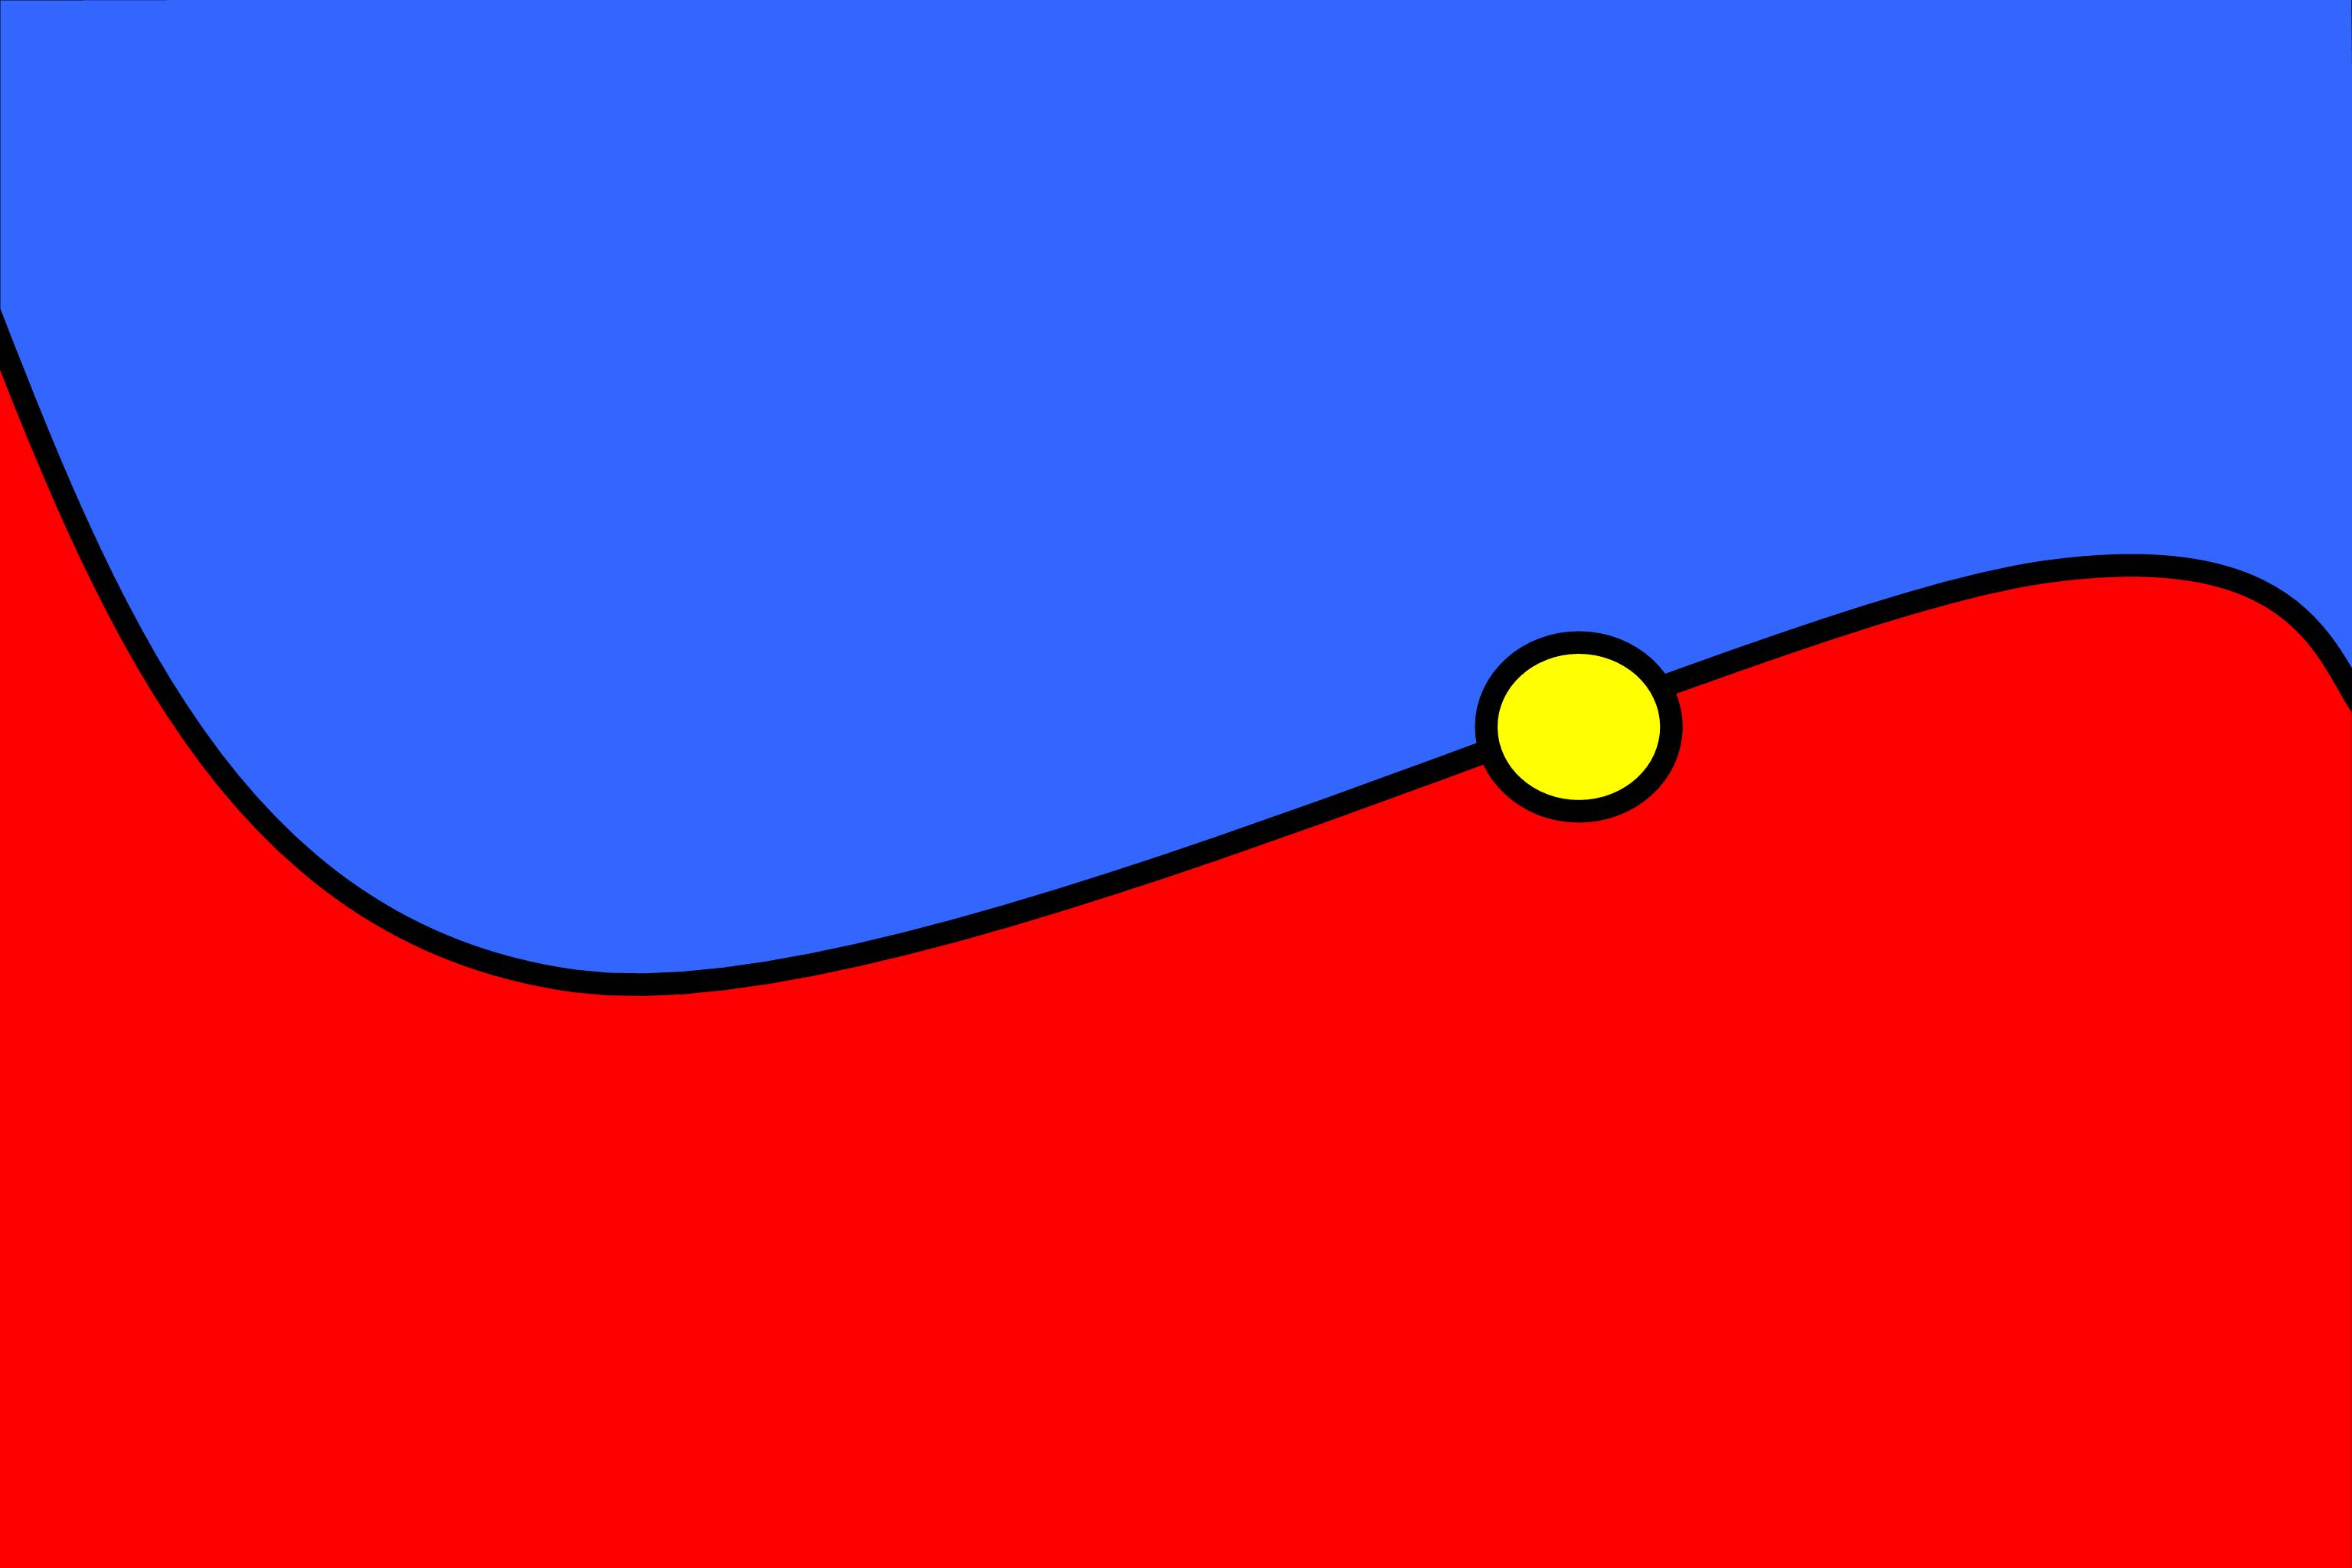 Blue yellow red pillows